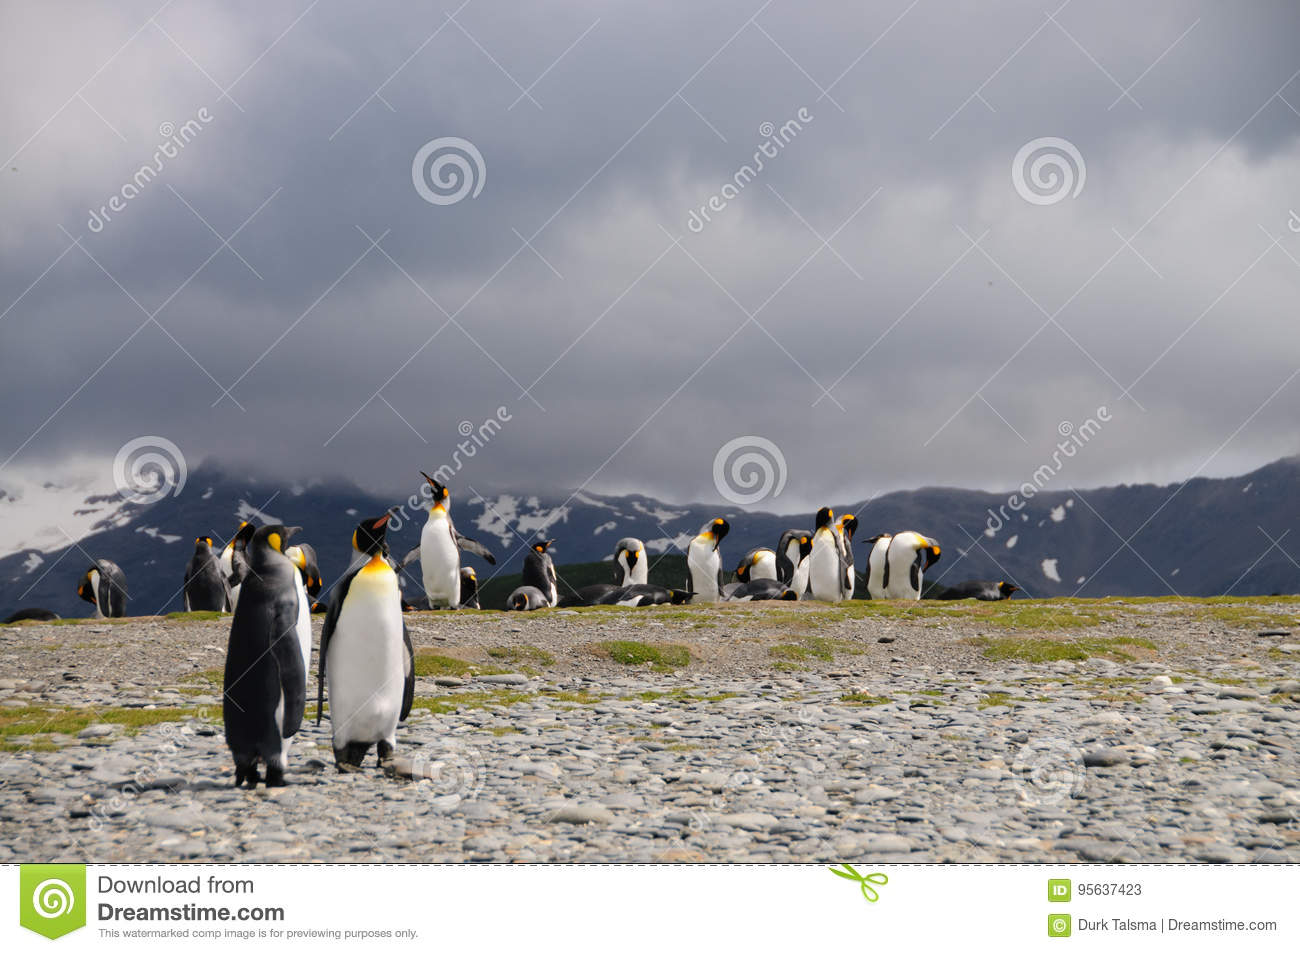 King Penguins on Salisbury plains